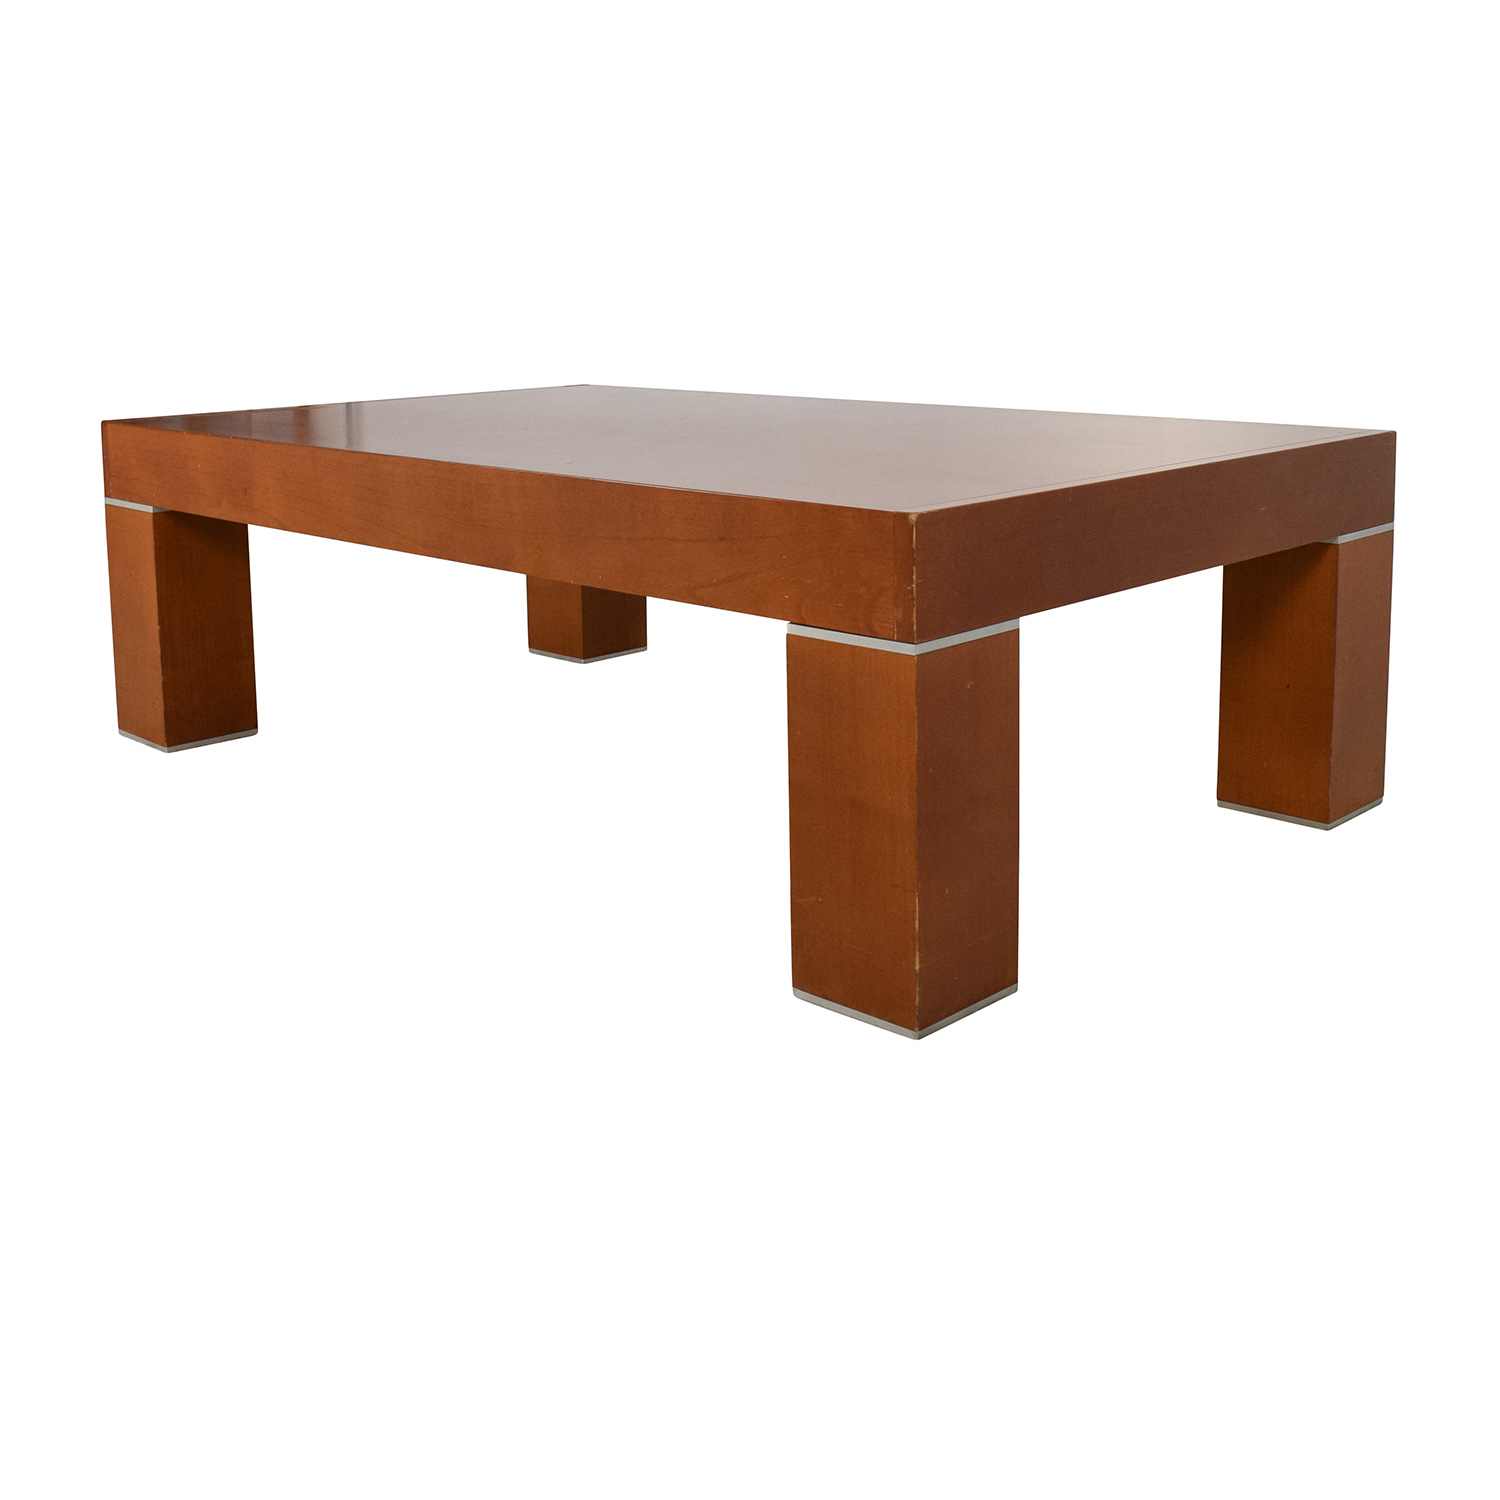 86 off roche bobois paris roche bobois paris wood for Coffee tables zara home